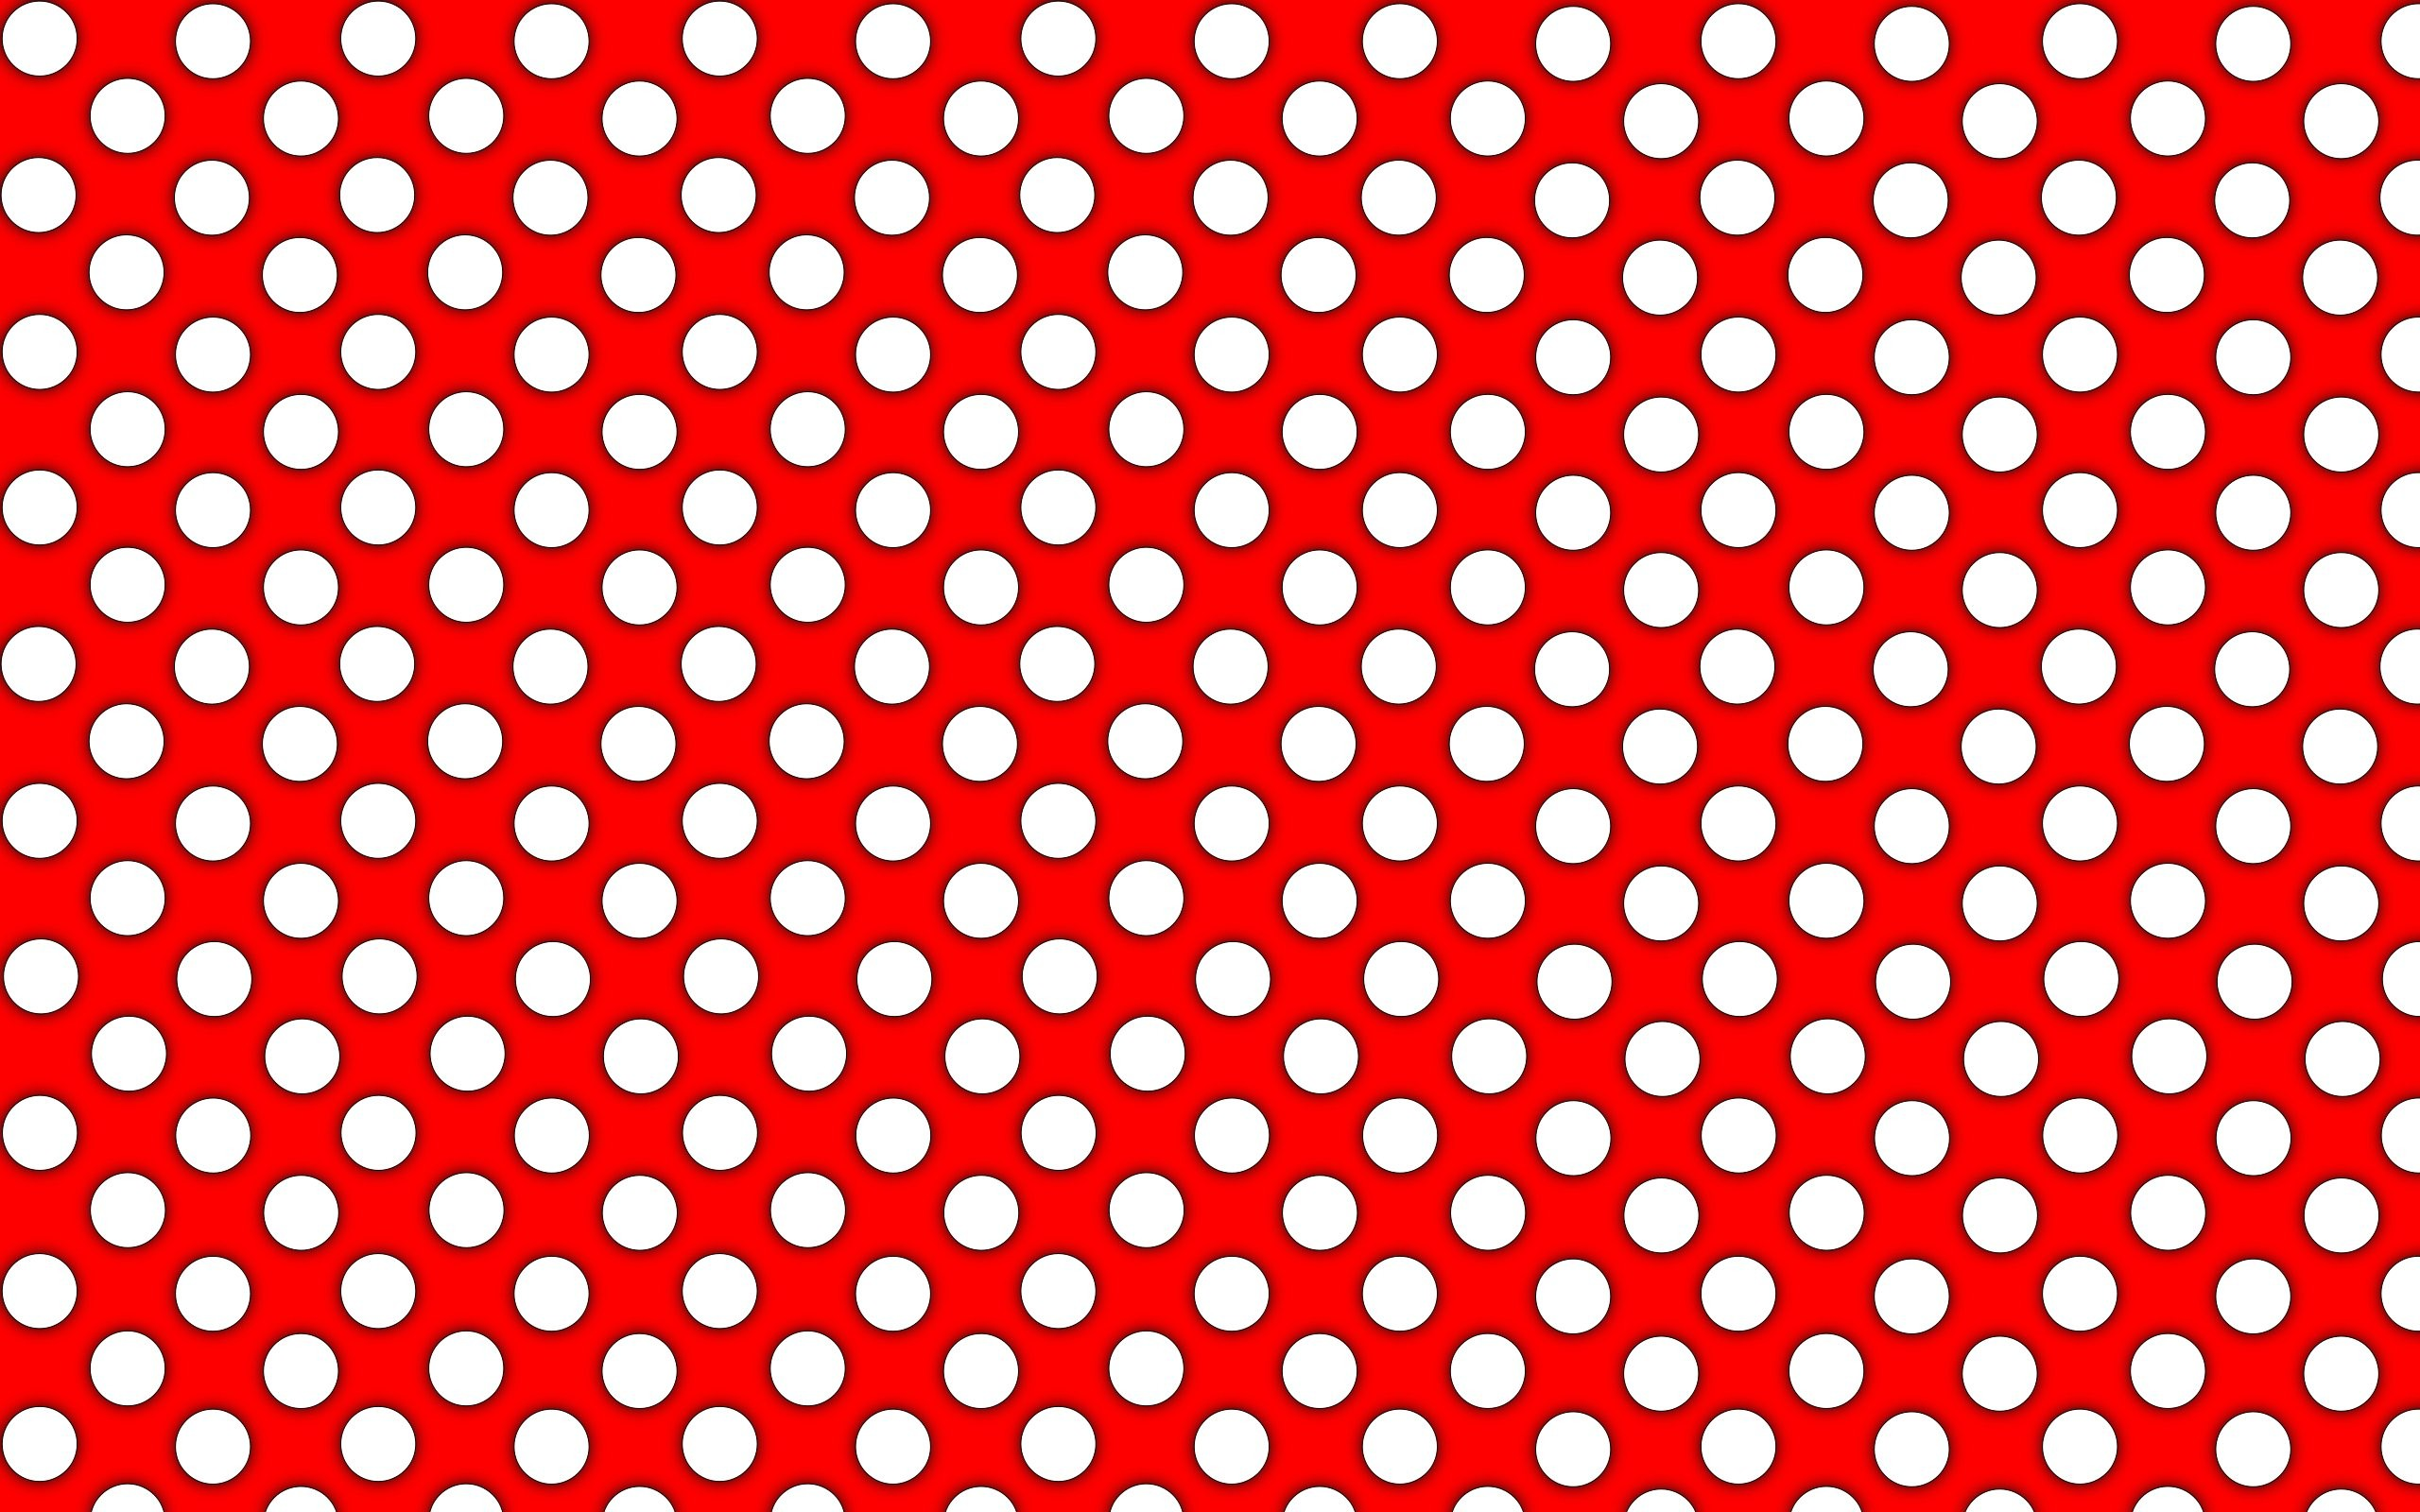 polka dot wallpaper 183�� download free cool high resolution